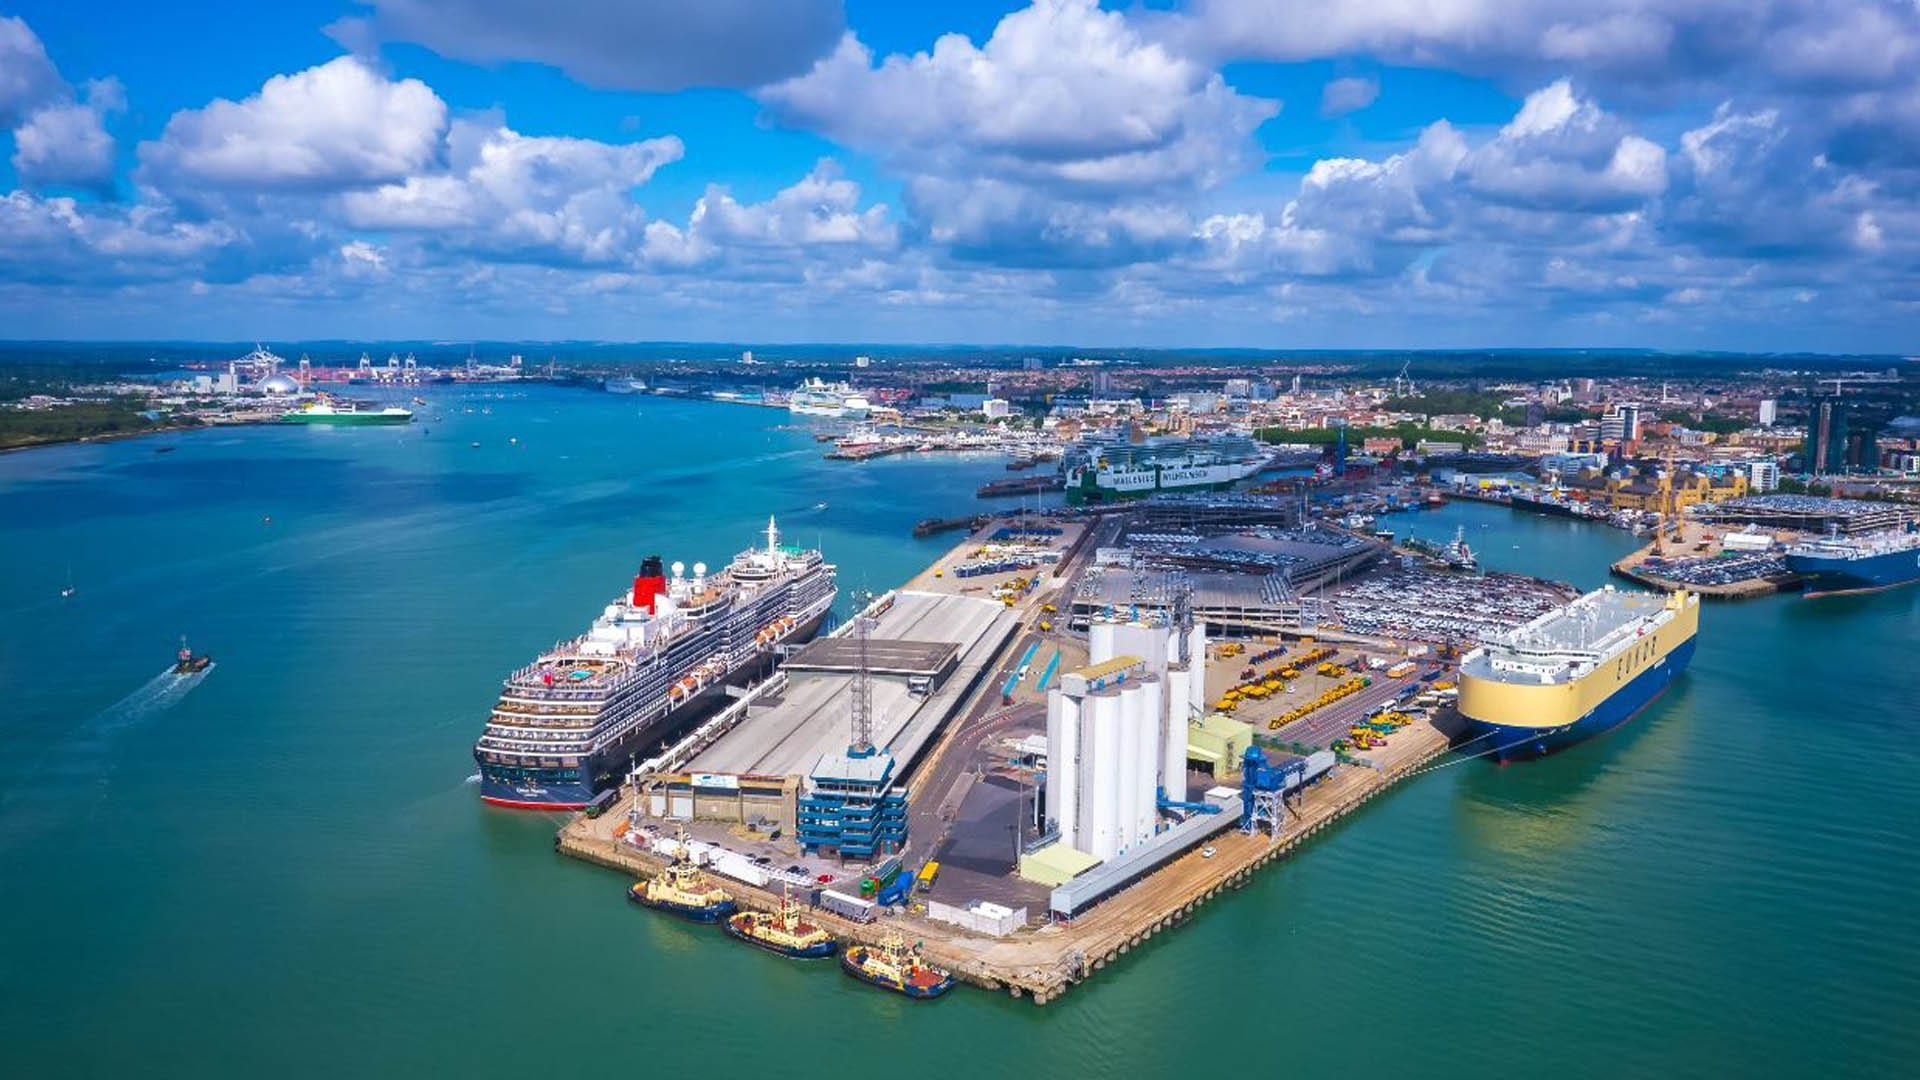 UK Launches First Port Economic Partnership Between Port and State